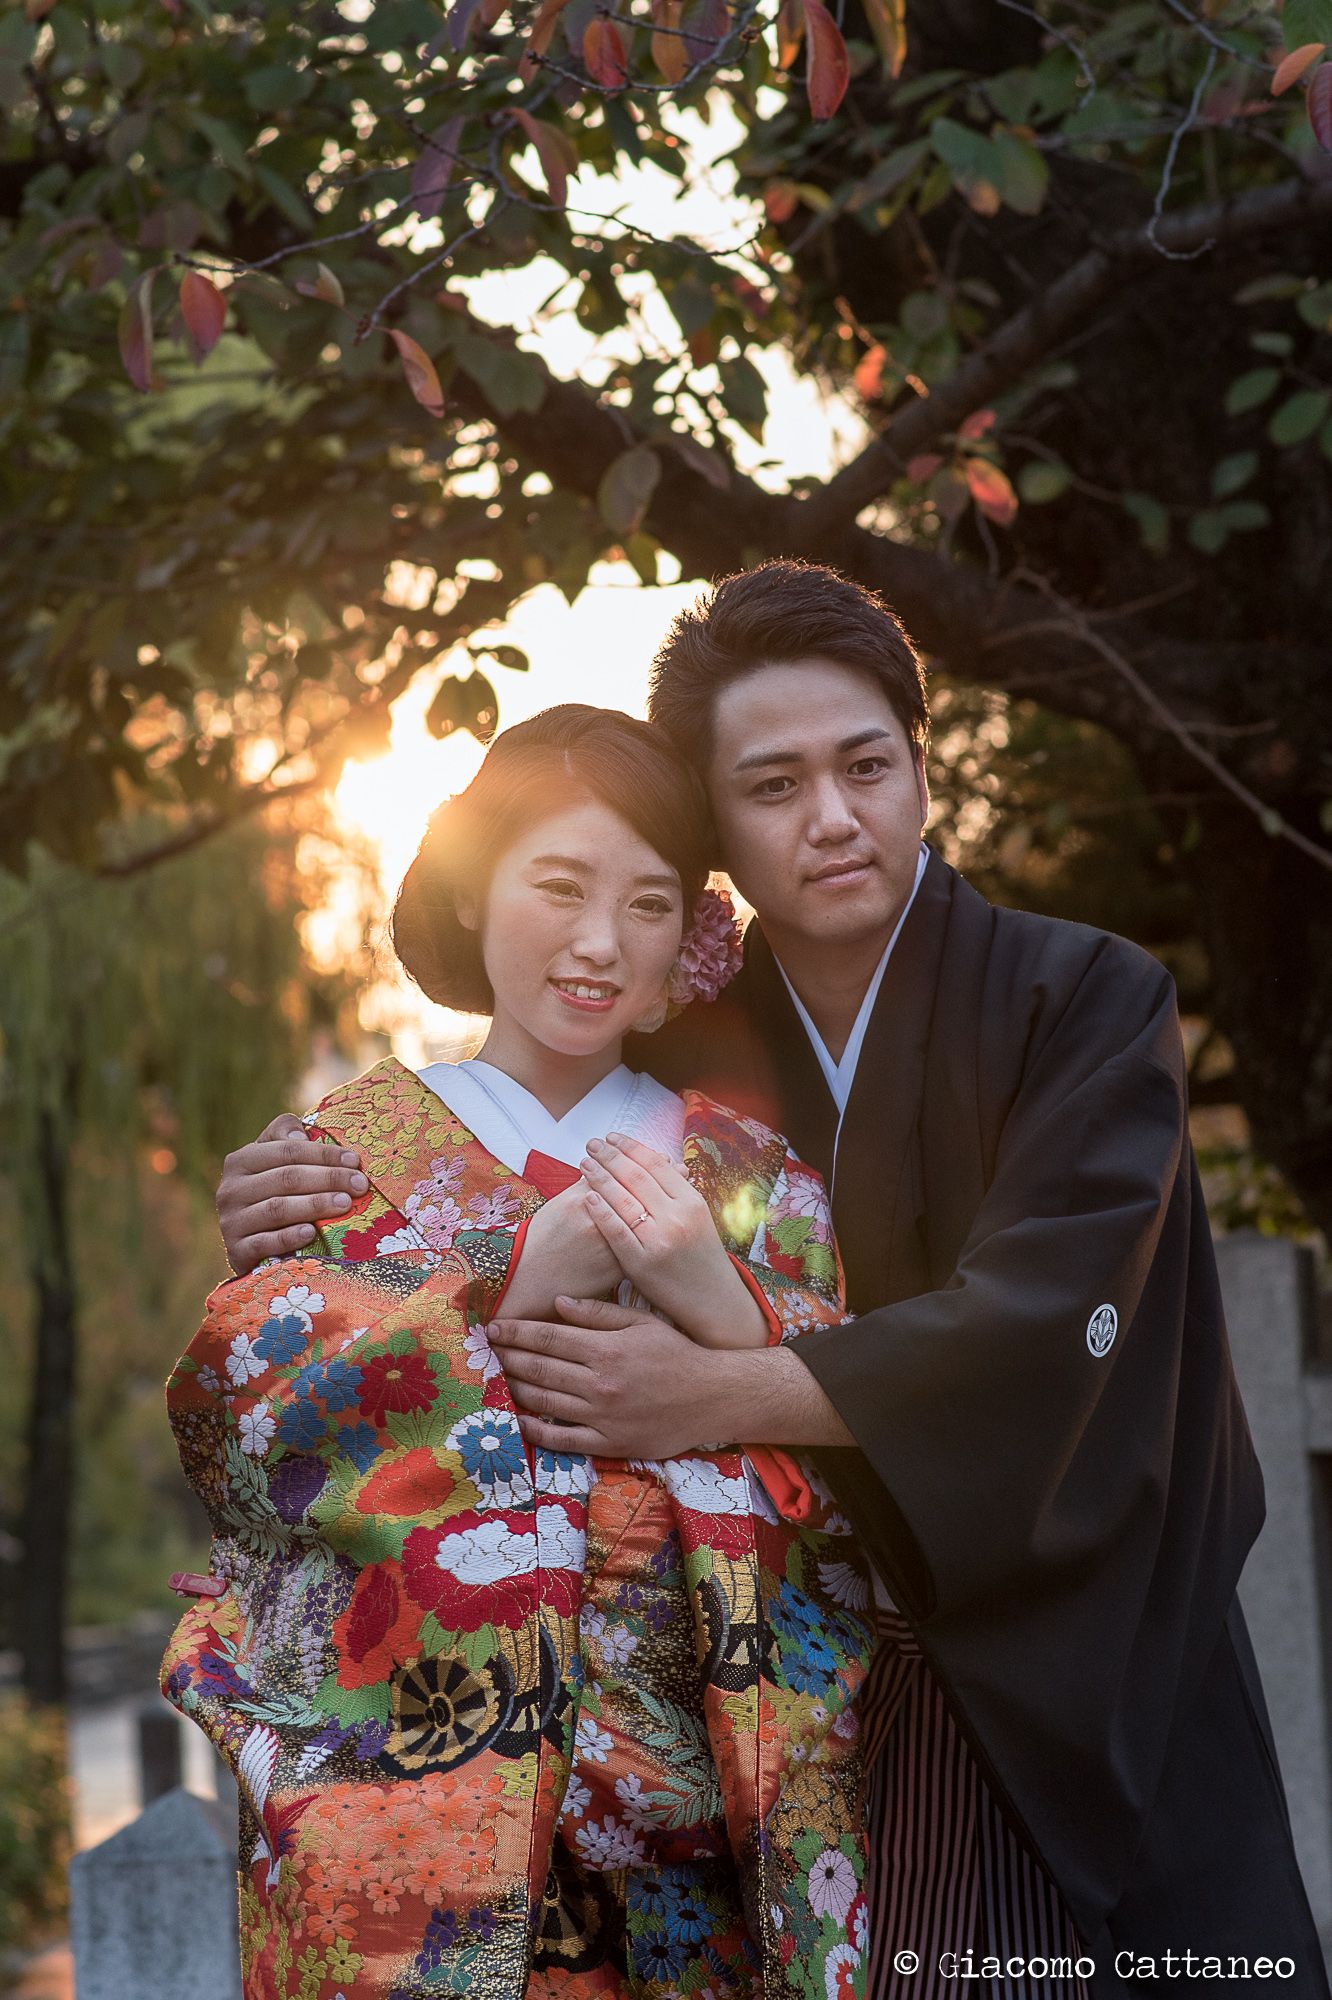 ISO 400, 85mm, f/4.0, 1/640 sec - Kyoto, wedding pictures frenzy!